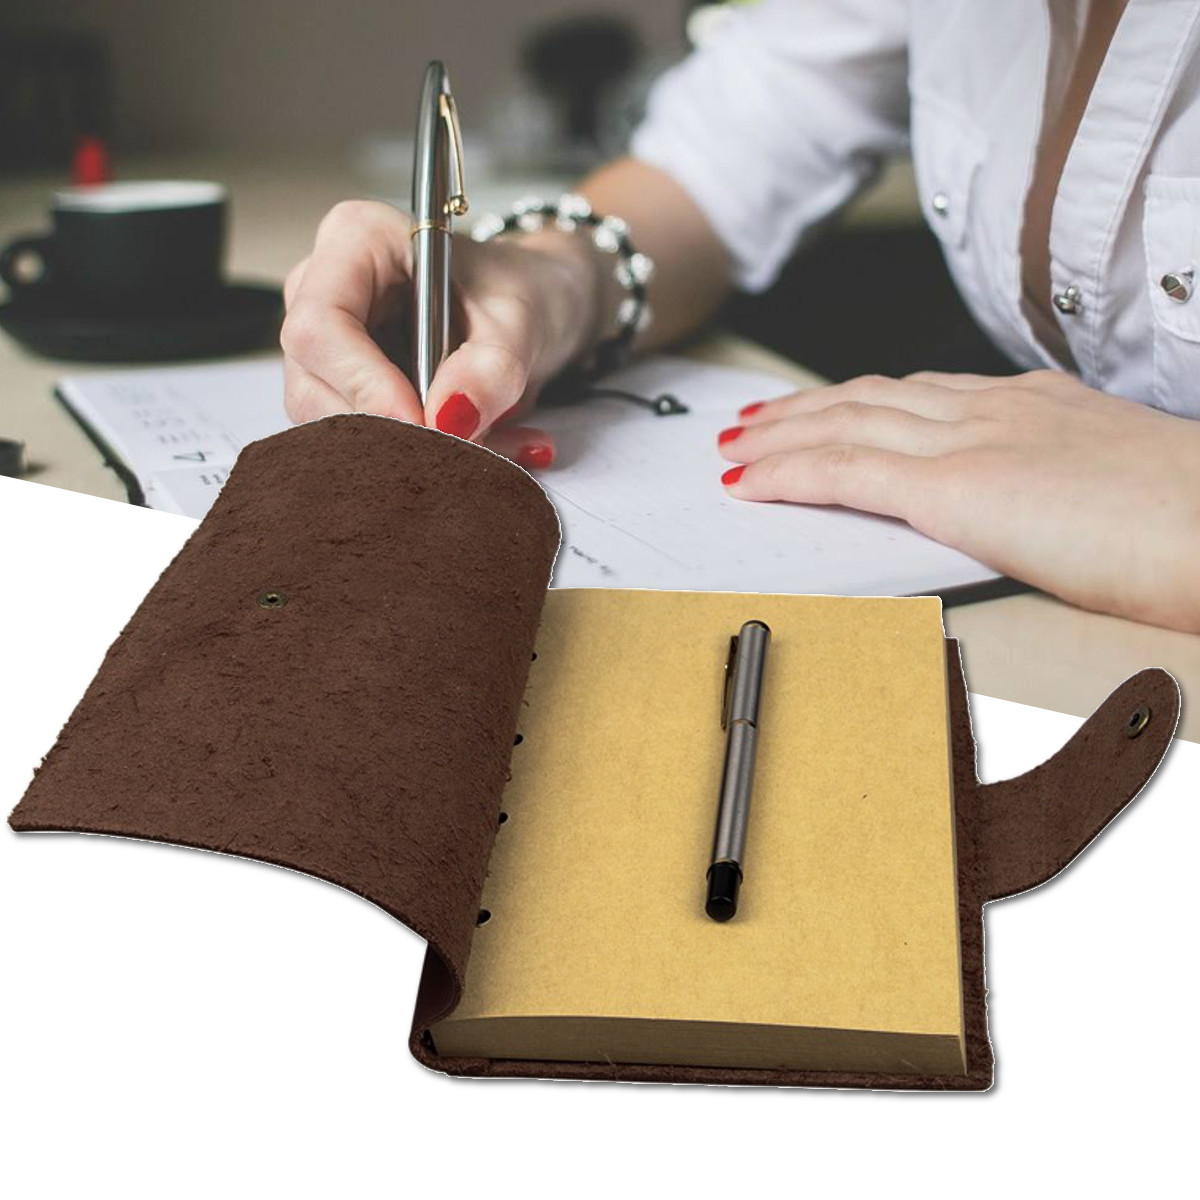 1Pcs Vintage Kraft Paper Notebook Leather Diary Journals Notepad School Office Stationery Supplies Gift Traveler Journal